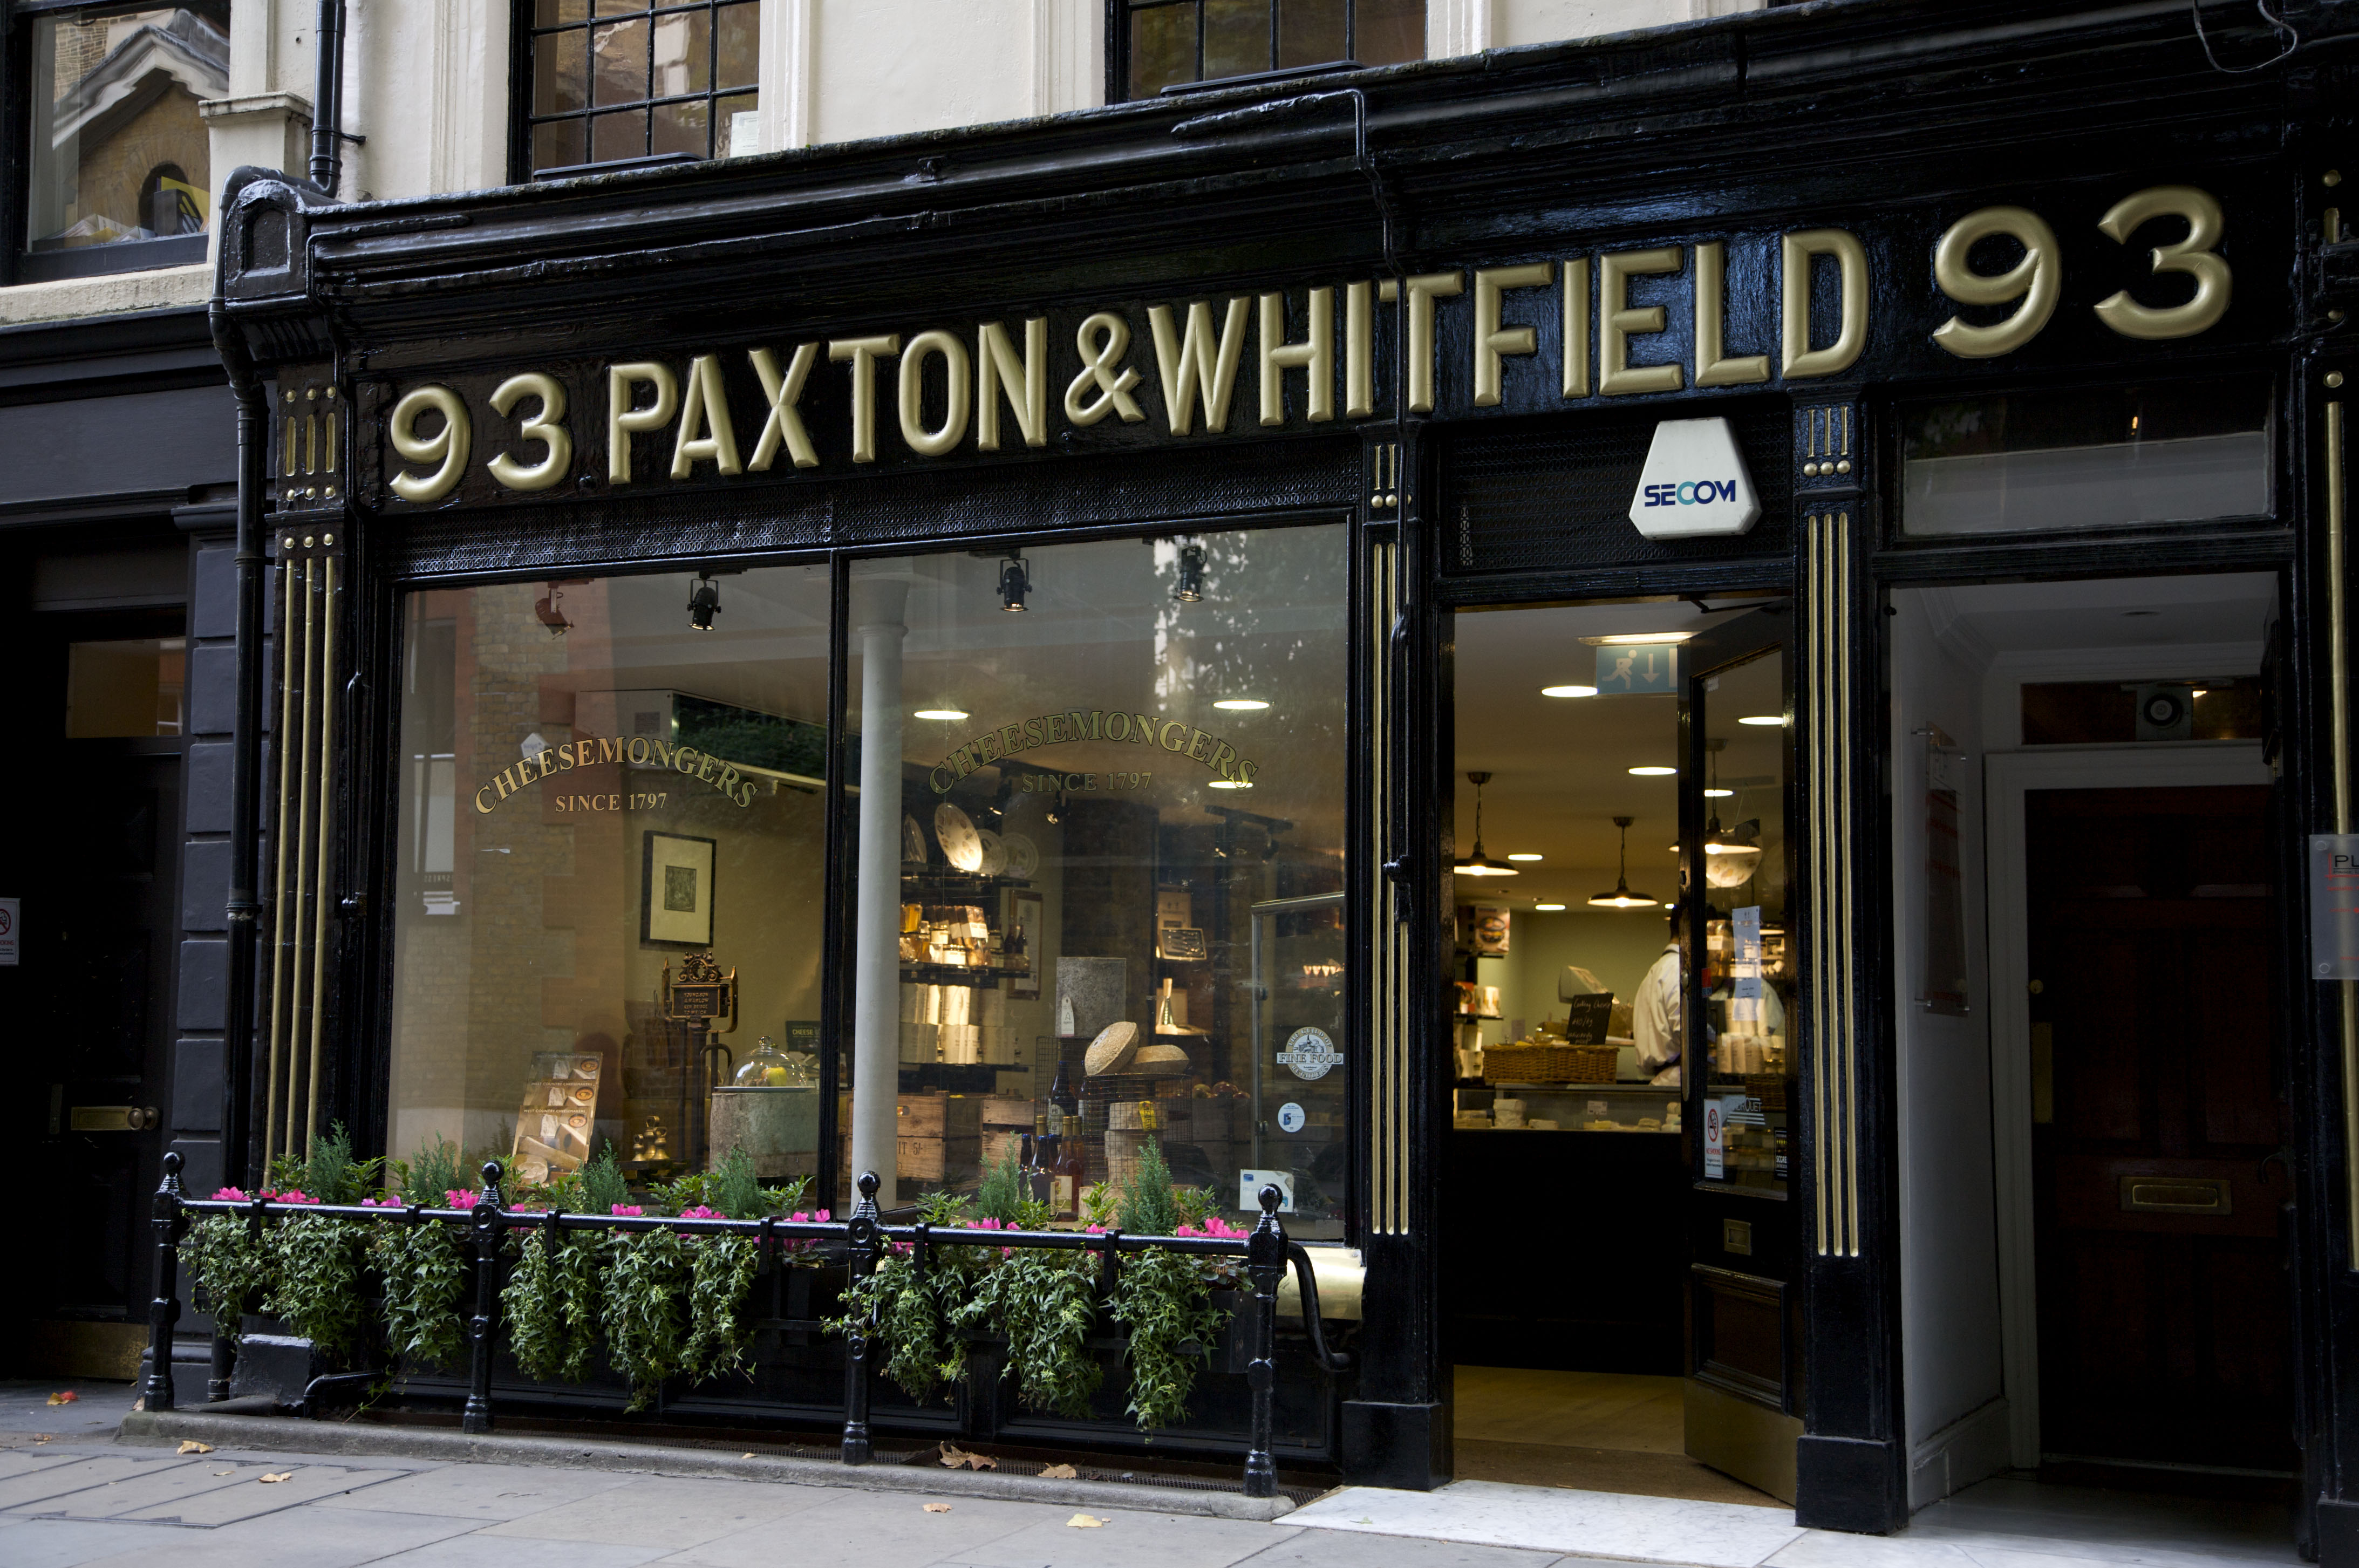 Paxton and Whitfield